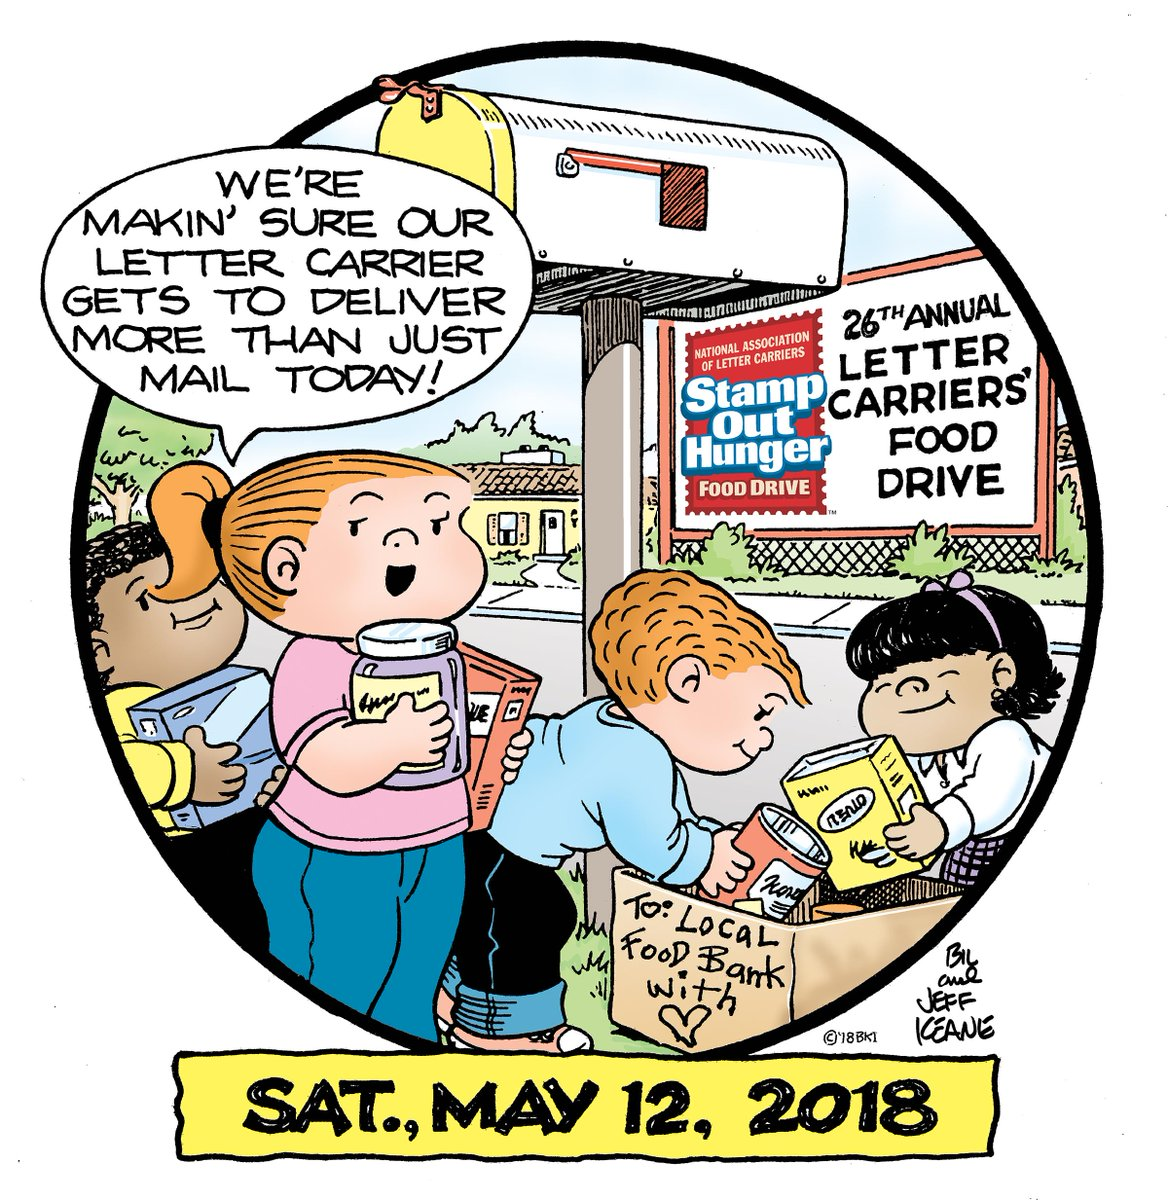 Montgomery area fb on twitter the 26th annual national association all you need to do is leave a donation near your mailbox tonight and your letter carrier will pick it up as they complete their regular altavistaventures Gallery